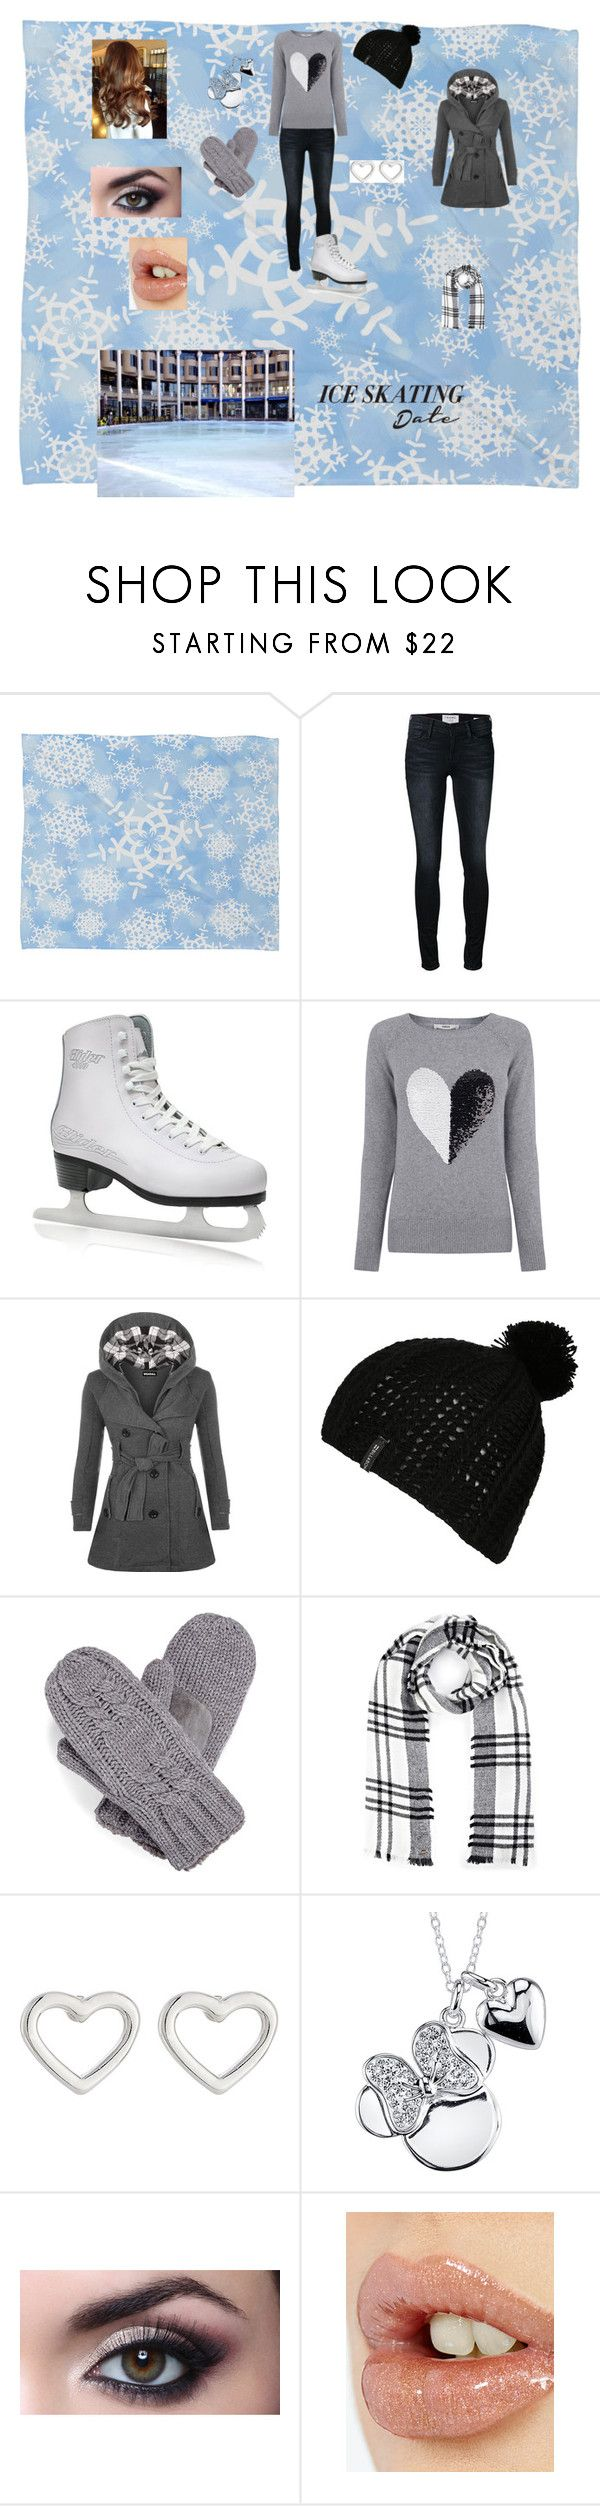 """Ice Skating Date Outfit"" by aliciakreb ❤ liked on Polyvore featuring moda, DENY Designs, Frame Denim, Oasis, WearAll, Billabong, Isotoner, Lipsy, Marc by Marc Jacobs ve Disney"